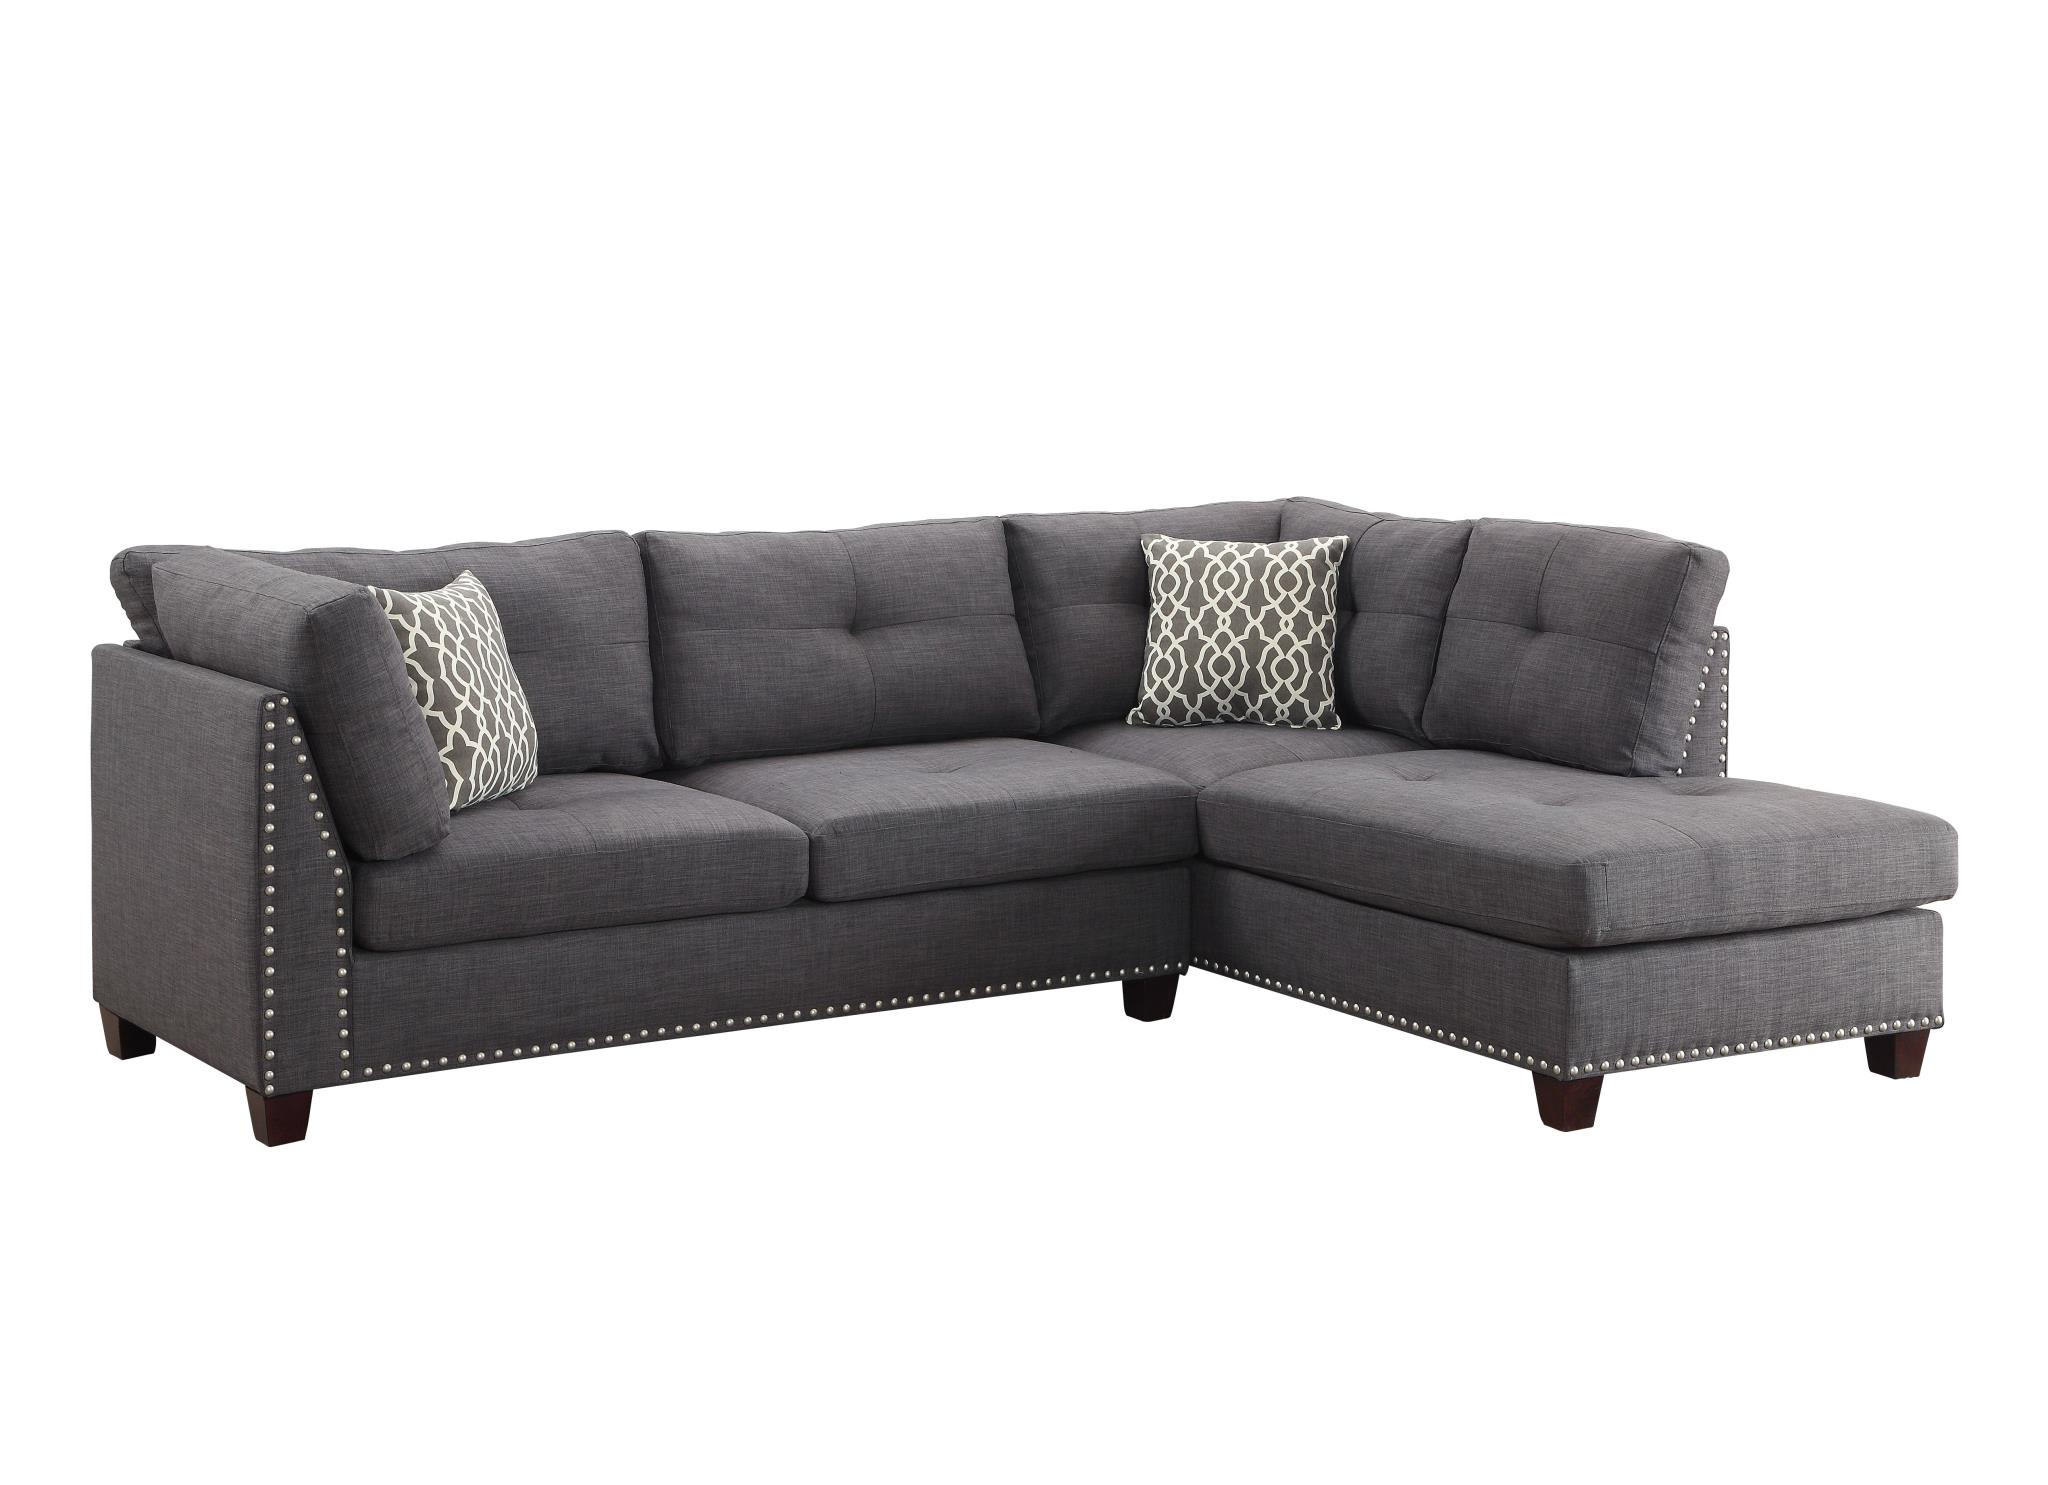 Sectional Sofa w/ Right Facing Chaise Angle